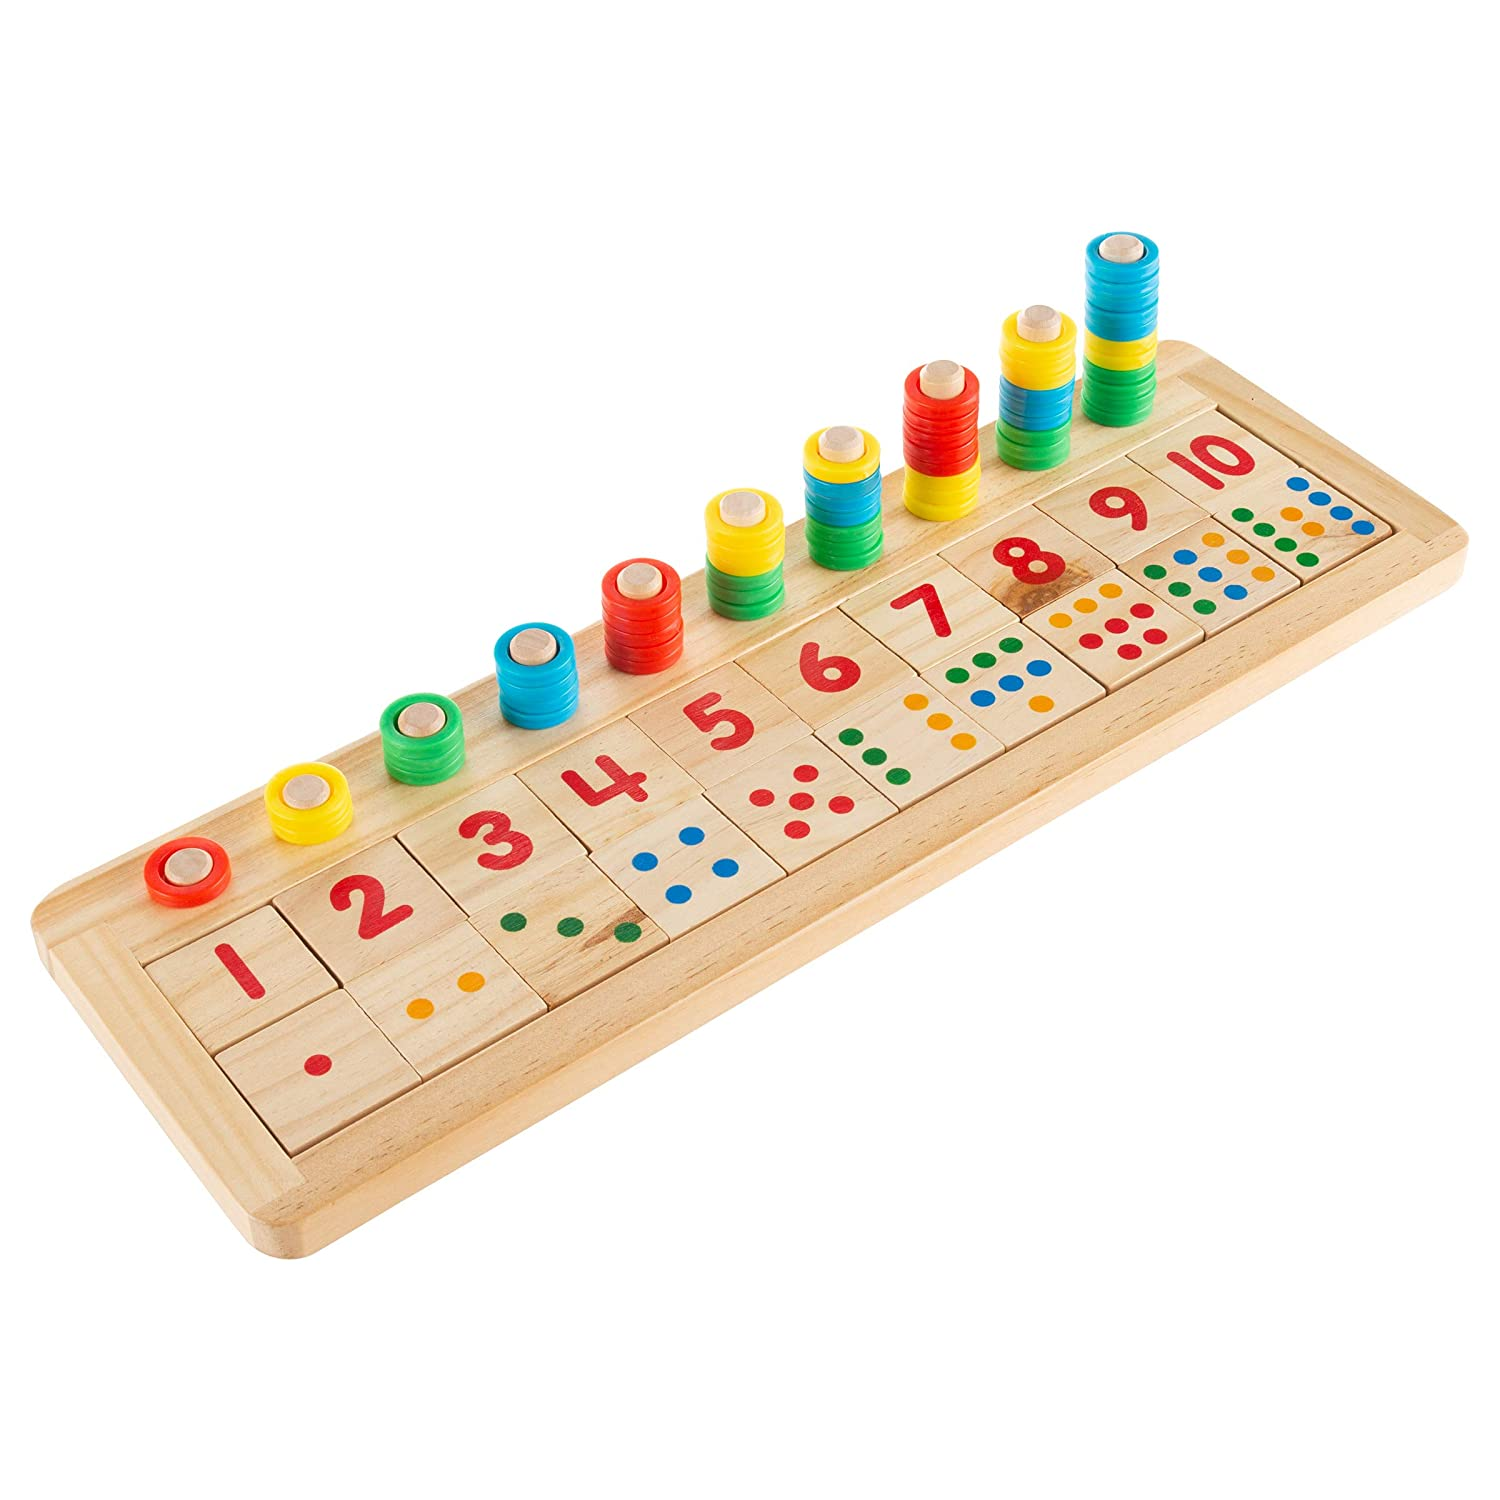 Hey Play Montessori Math Sorter Wooden Board with Pegs Number Blocks Colorful Stacking Rings Preschool Educational STEM Counting Game for Kids